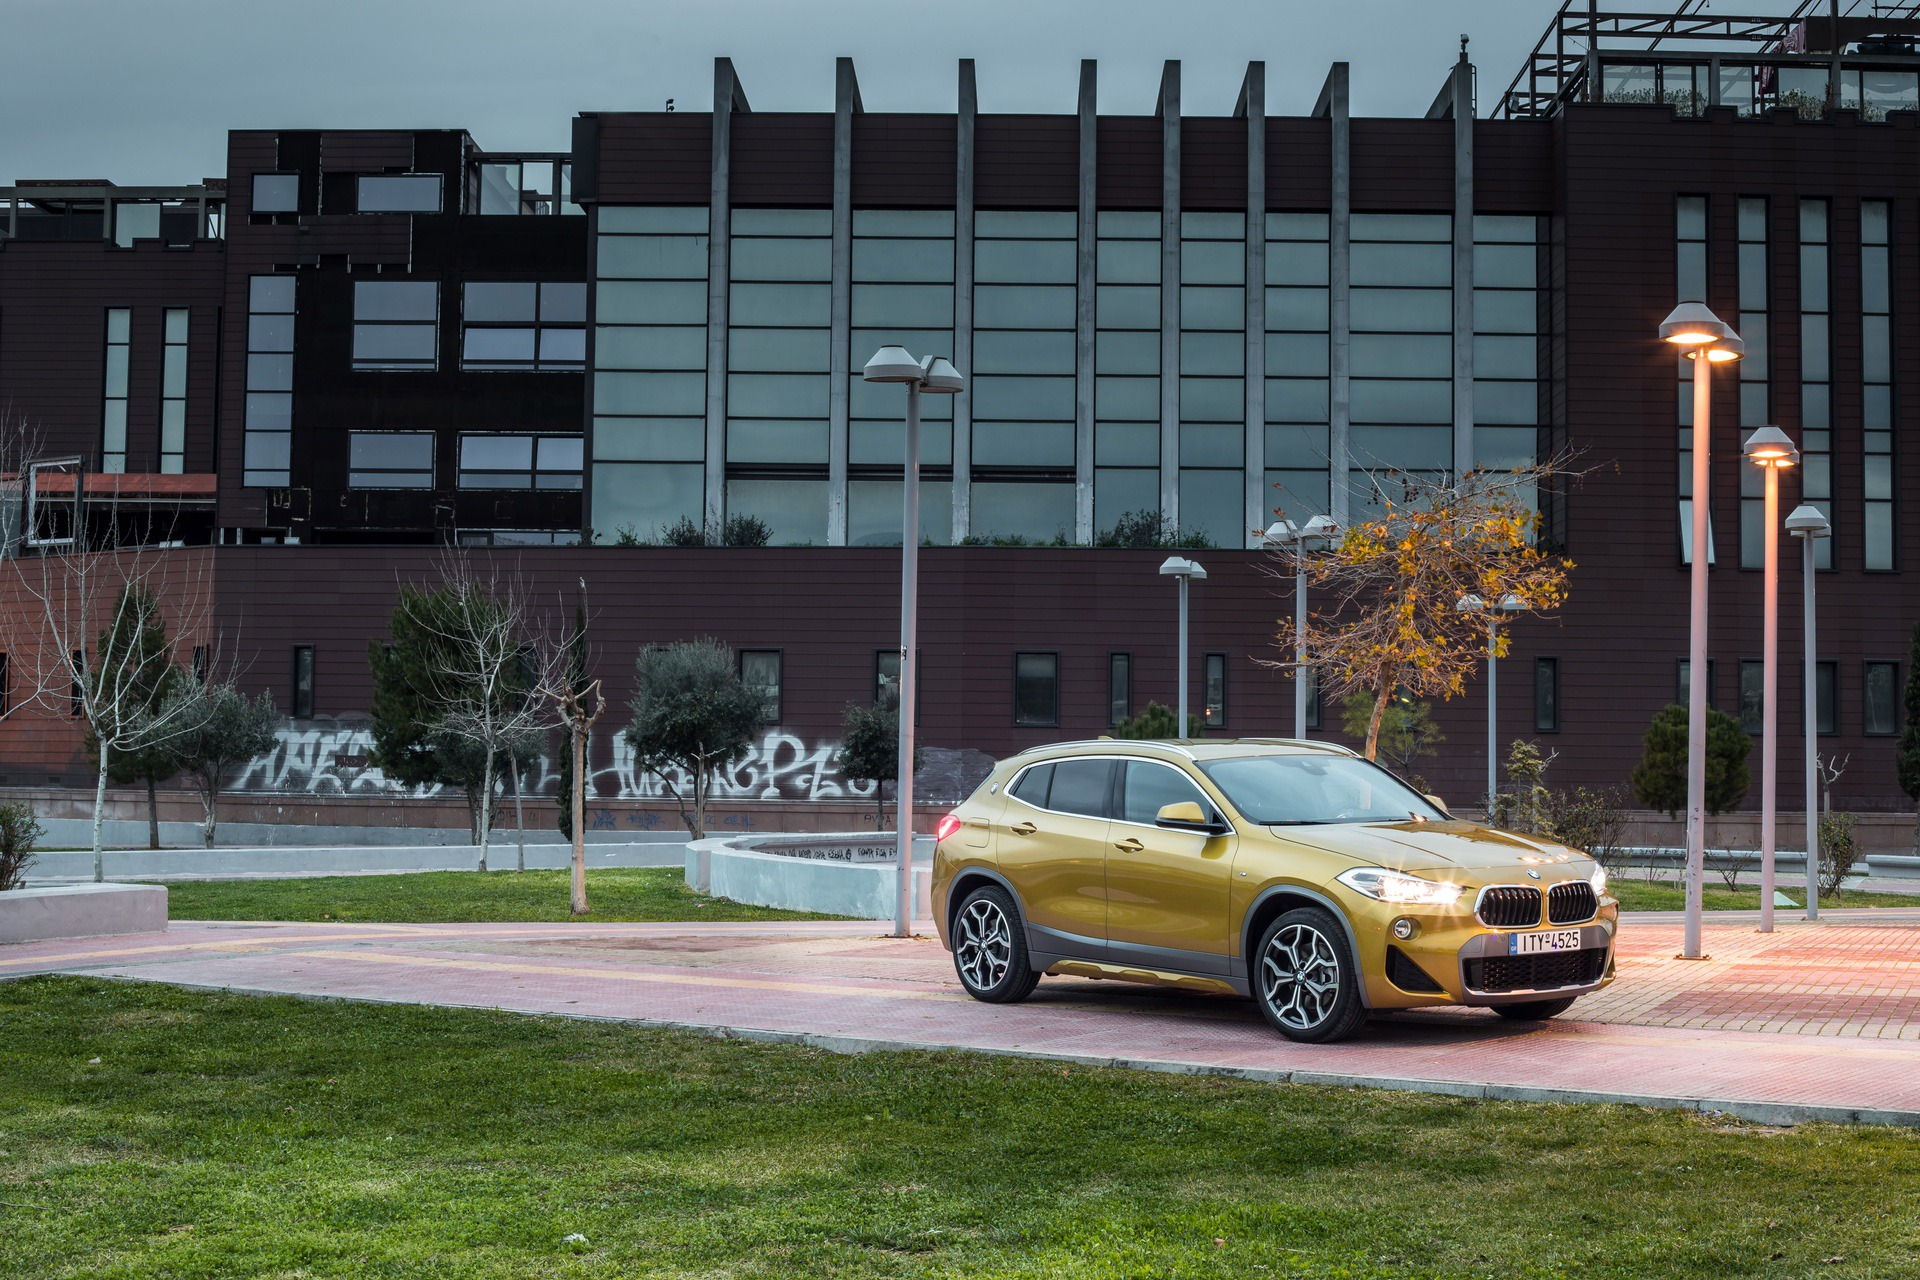 BMW_X2_Greek_presskit_0053